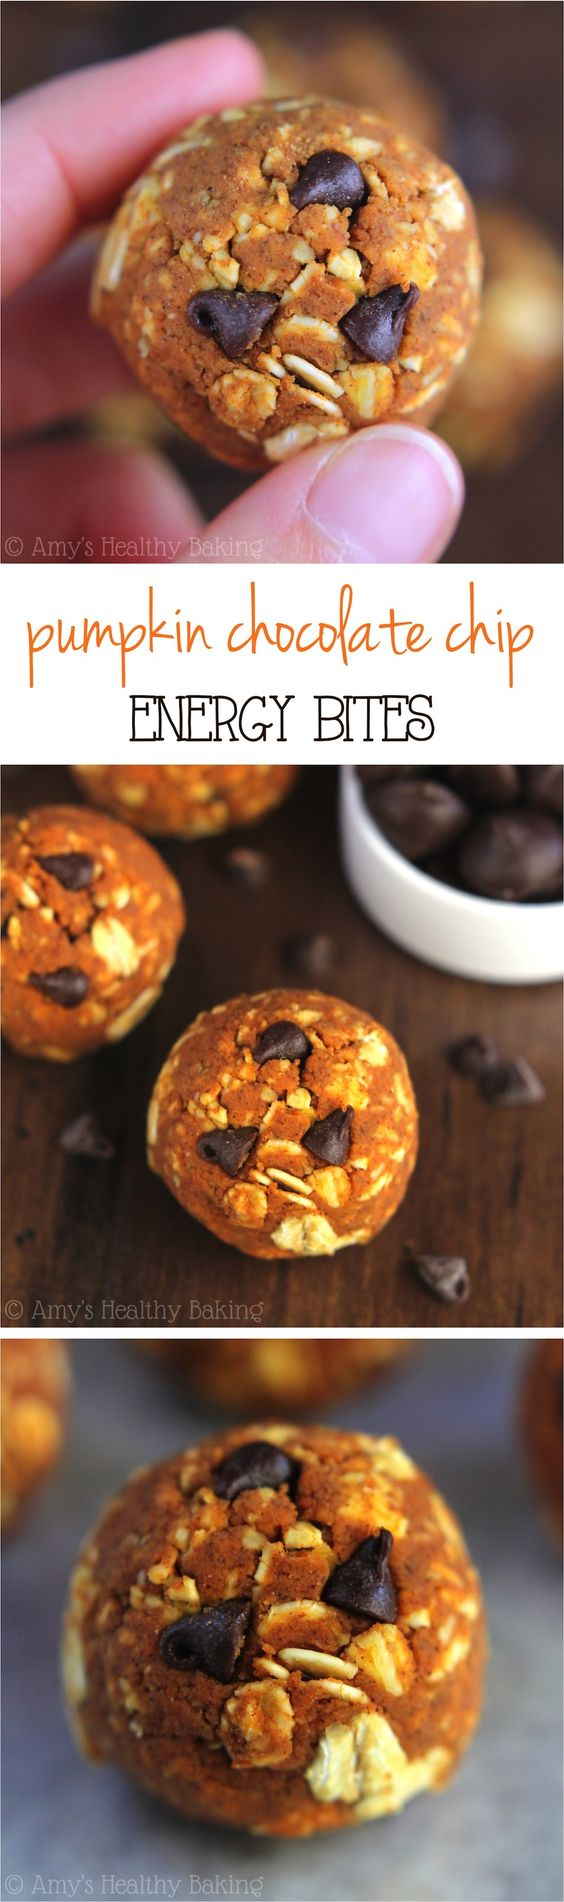 Pumpkin Chocolate Chip Energy Bites -- like a healthy snack version of the cookies! Only 6 ingredients & almost 10 grams of protein!